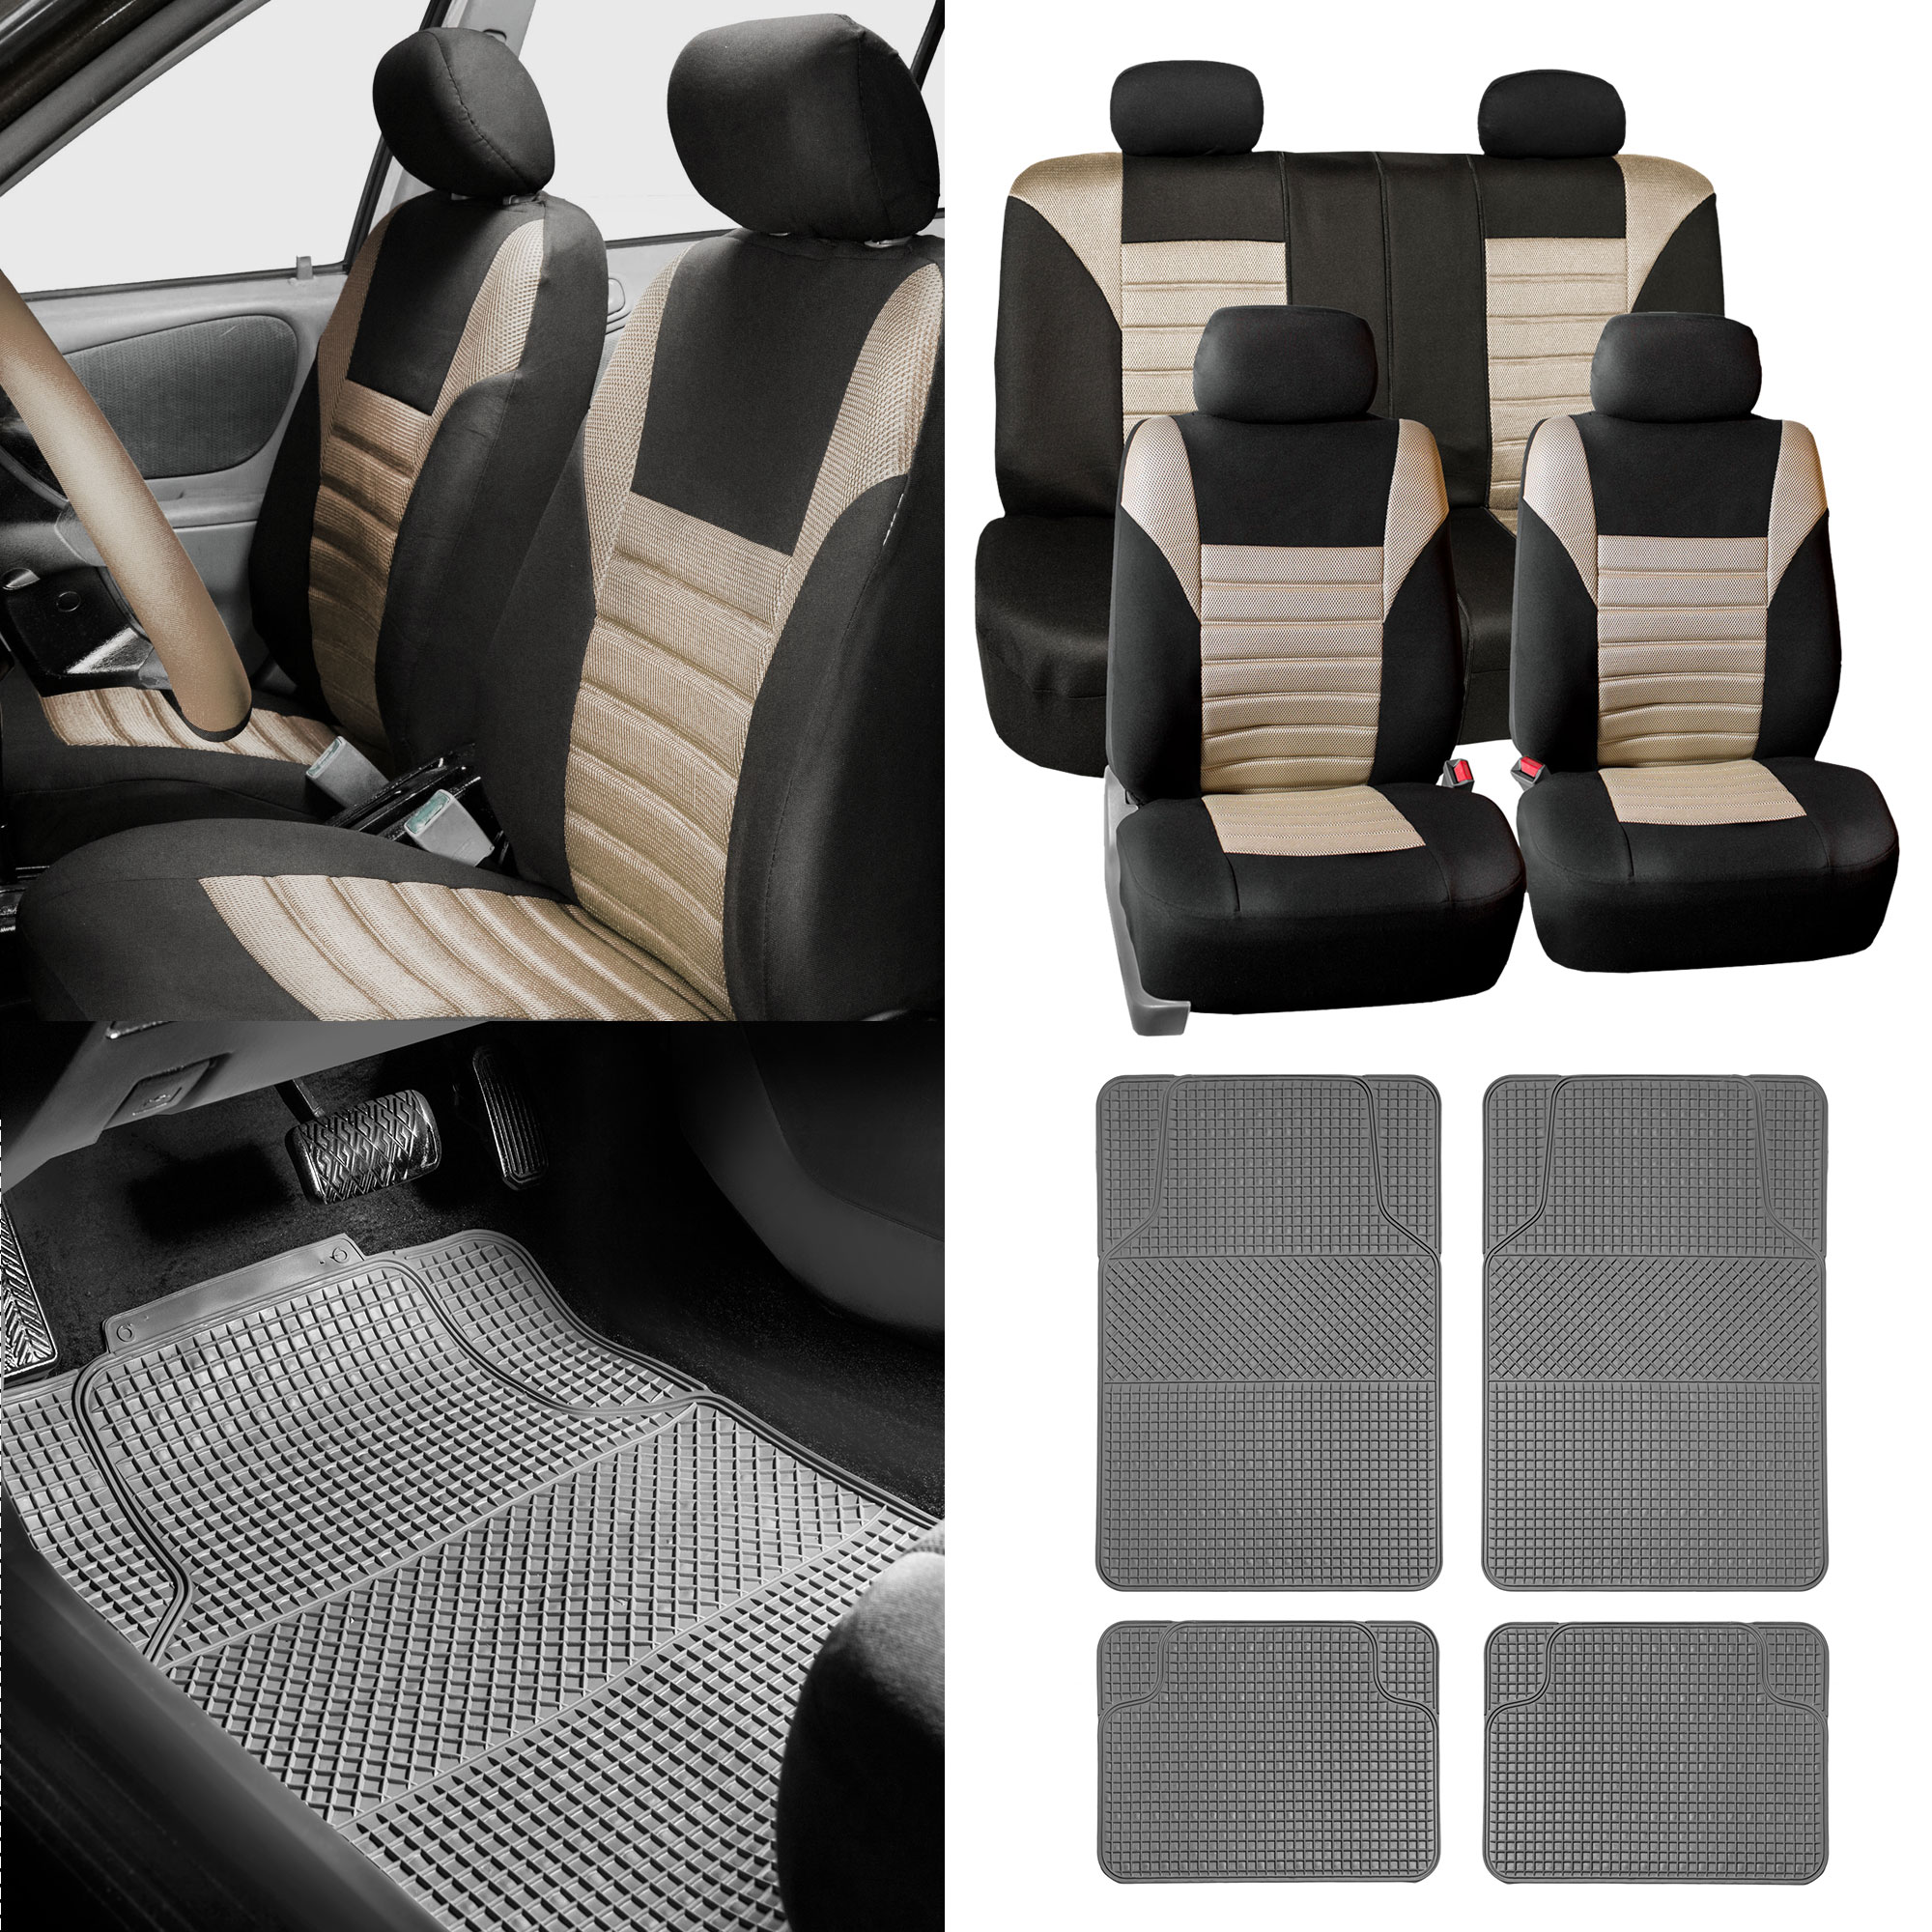 Combo Beige Auto Seat Covers Set With Gray Floor Mats For